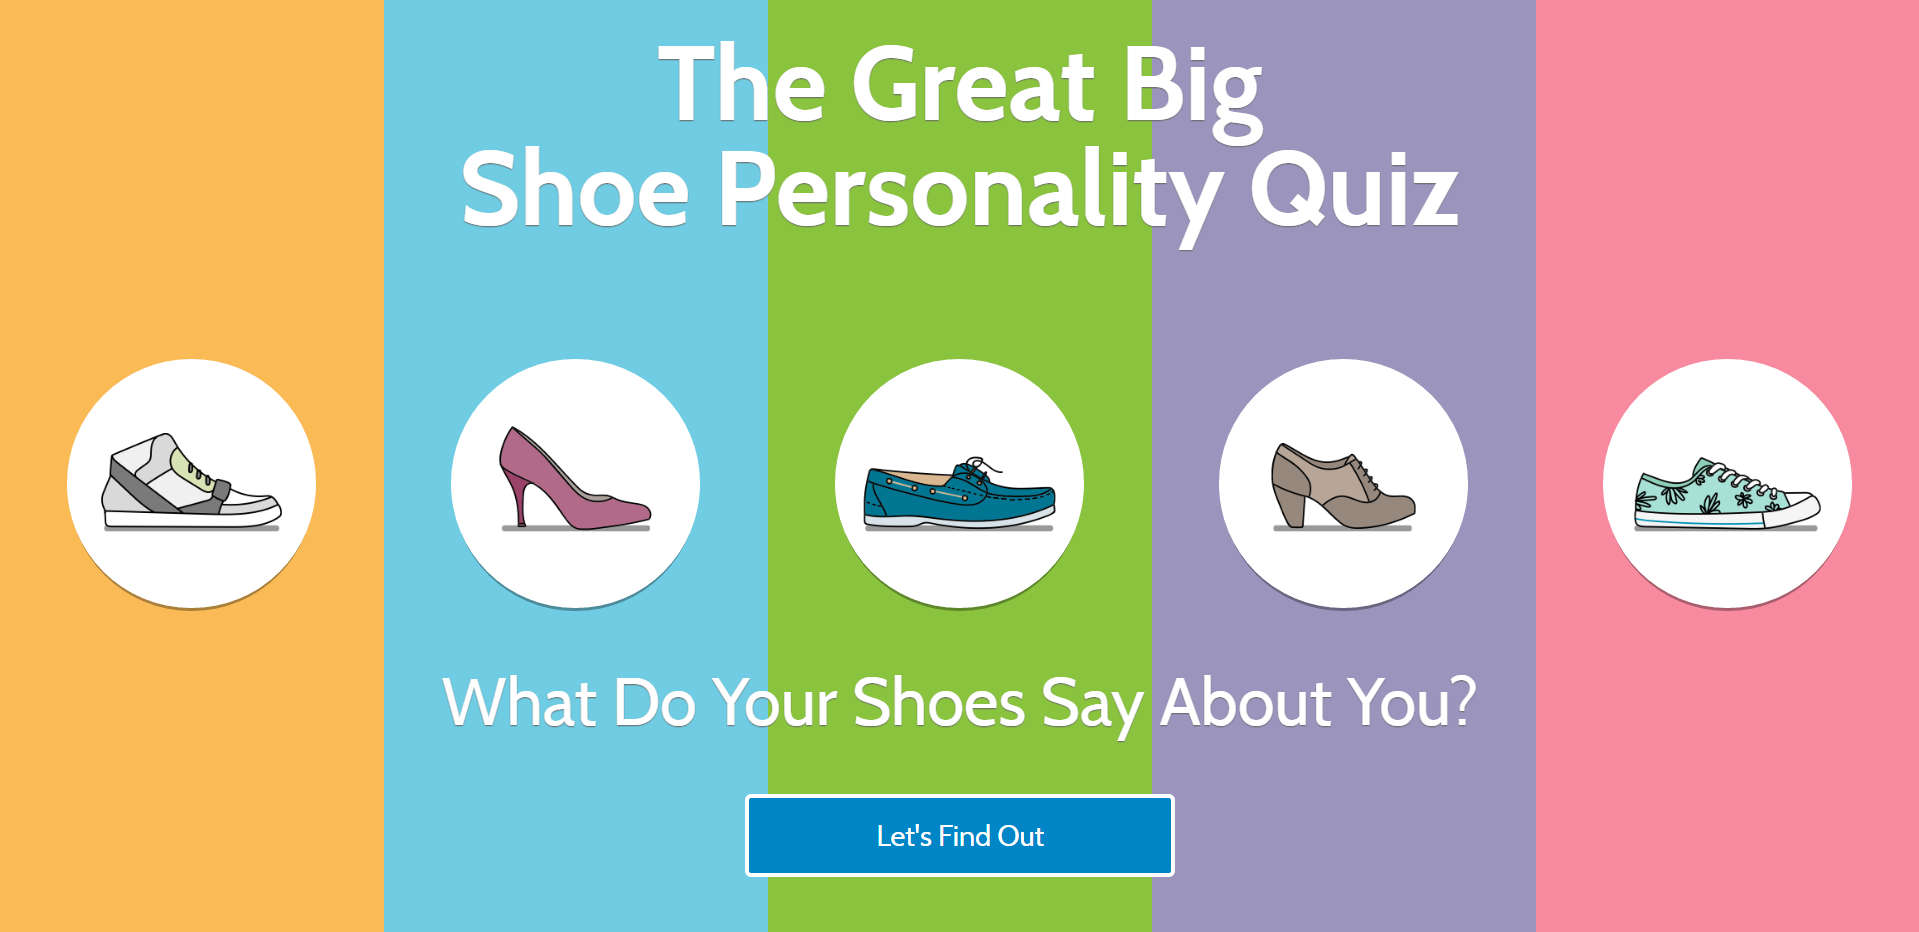 The Big Shoe Personality Quiz